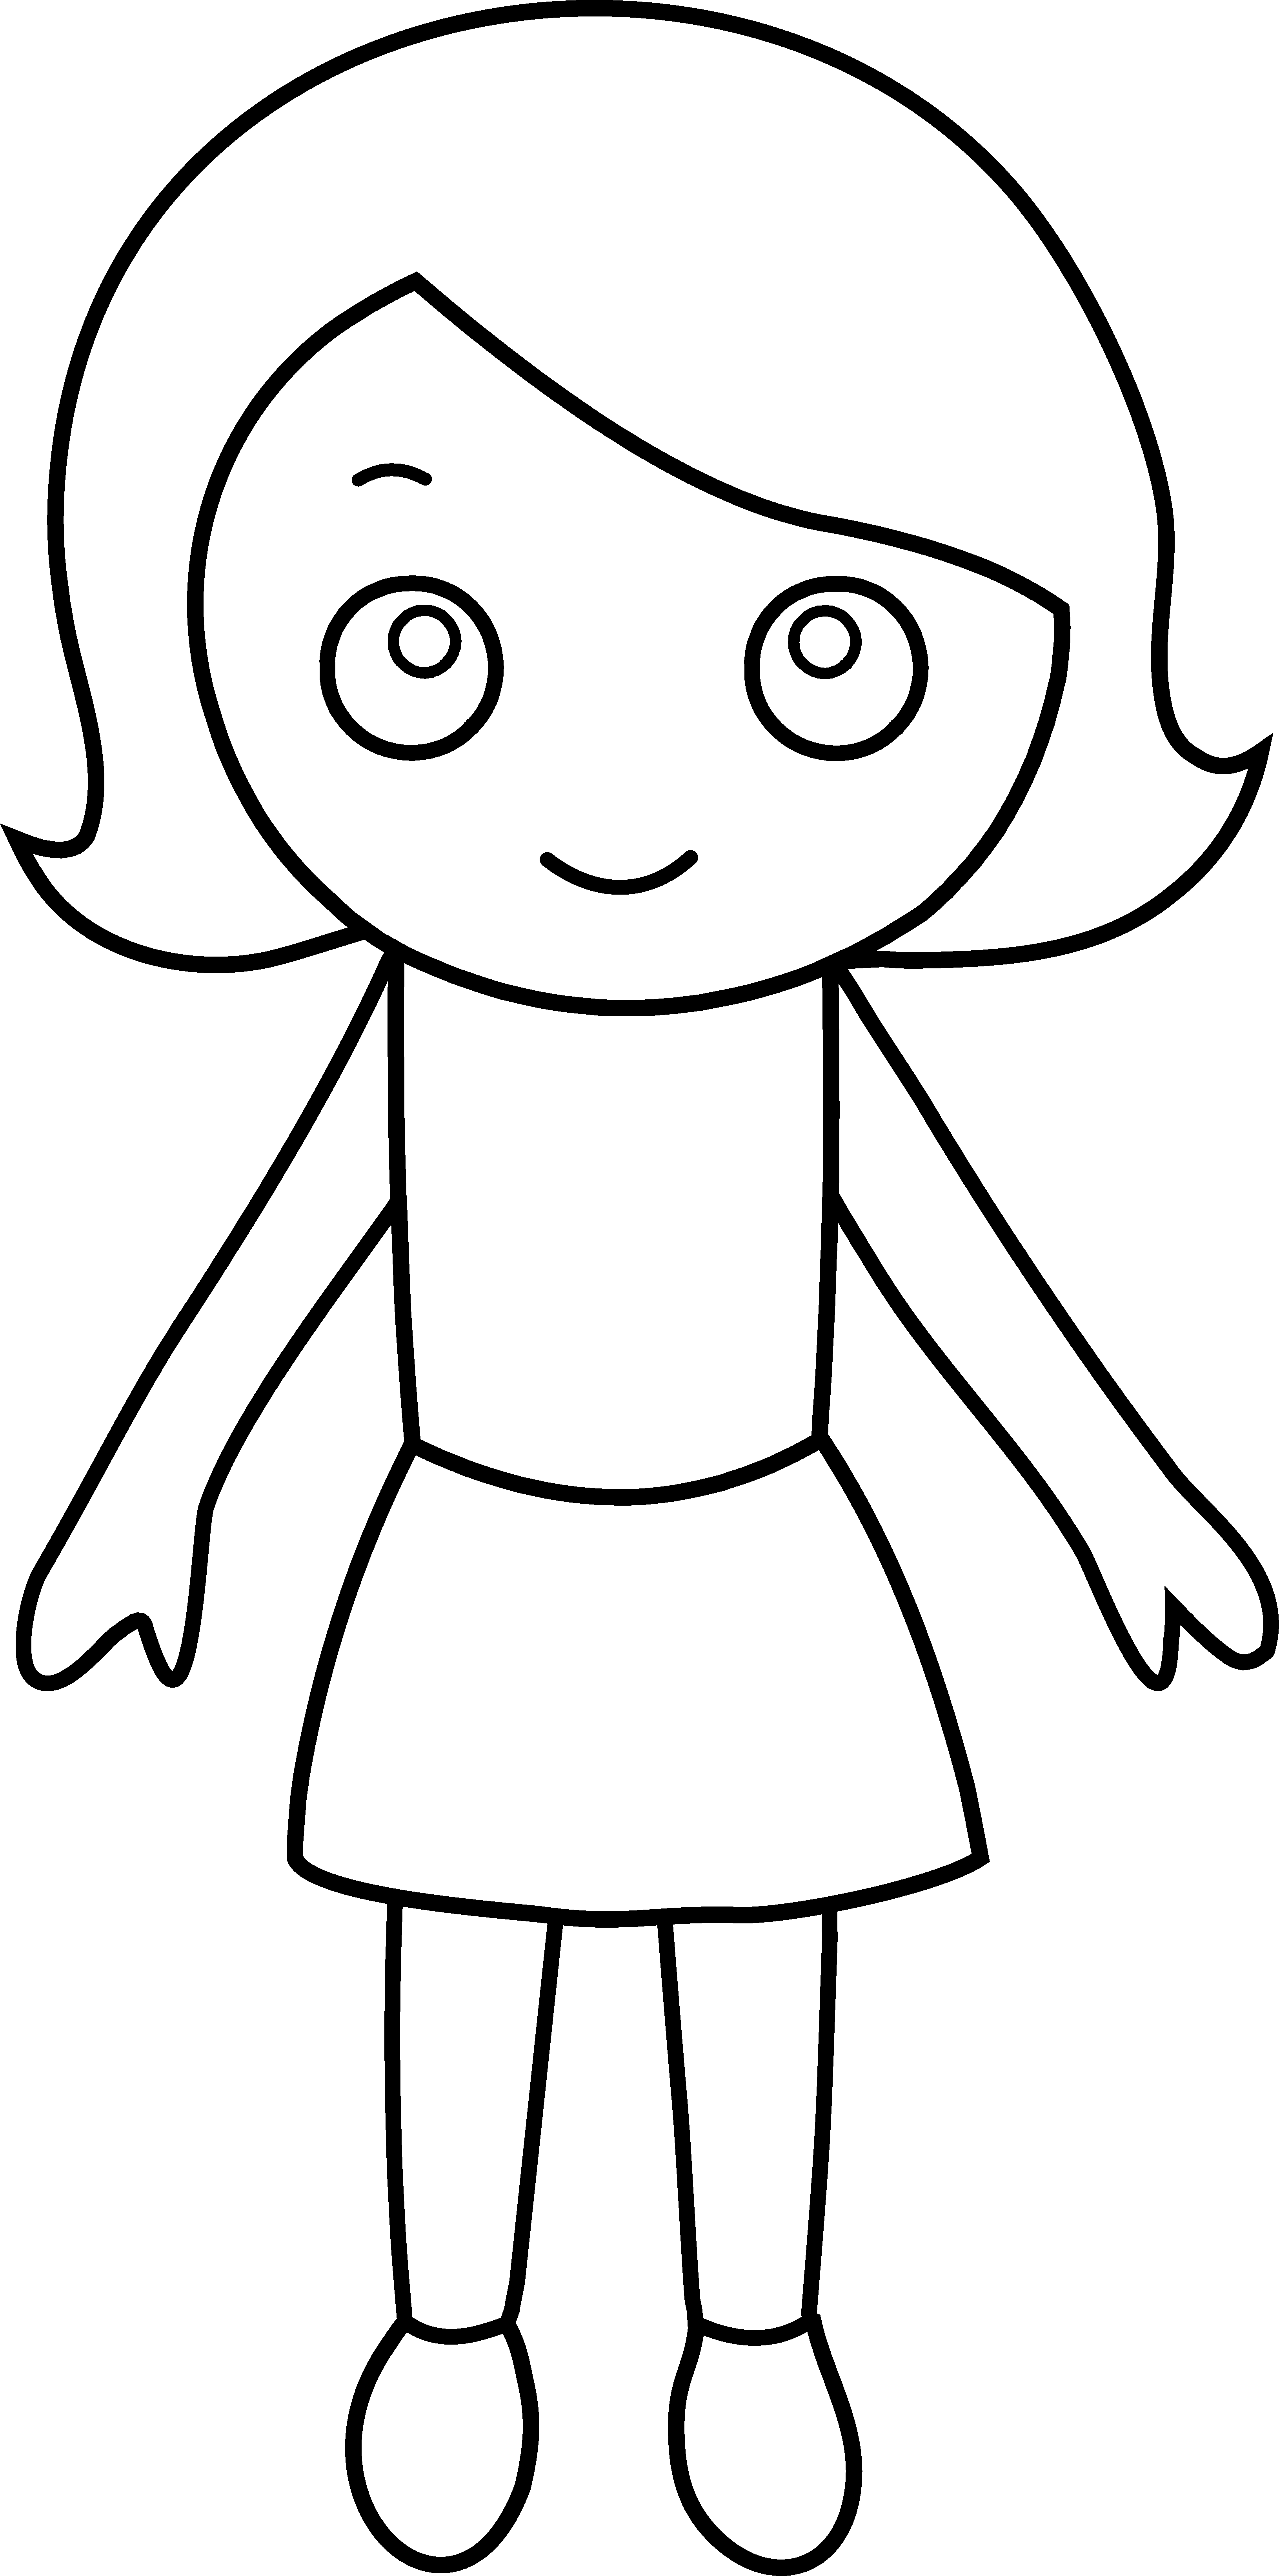 picture of a girl to color little girl coloring page free clip art a girl color of to picture